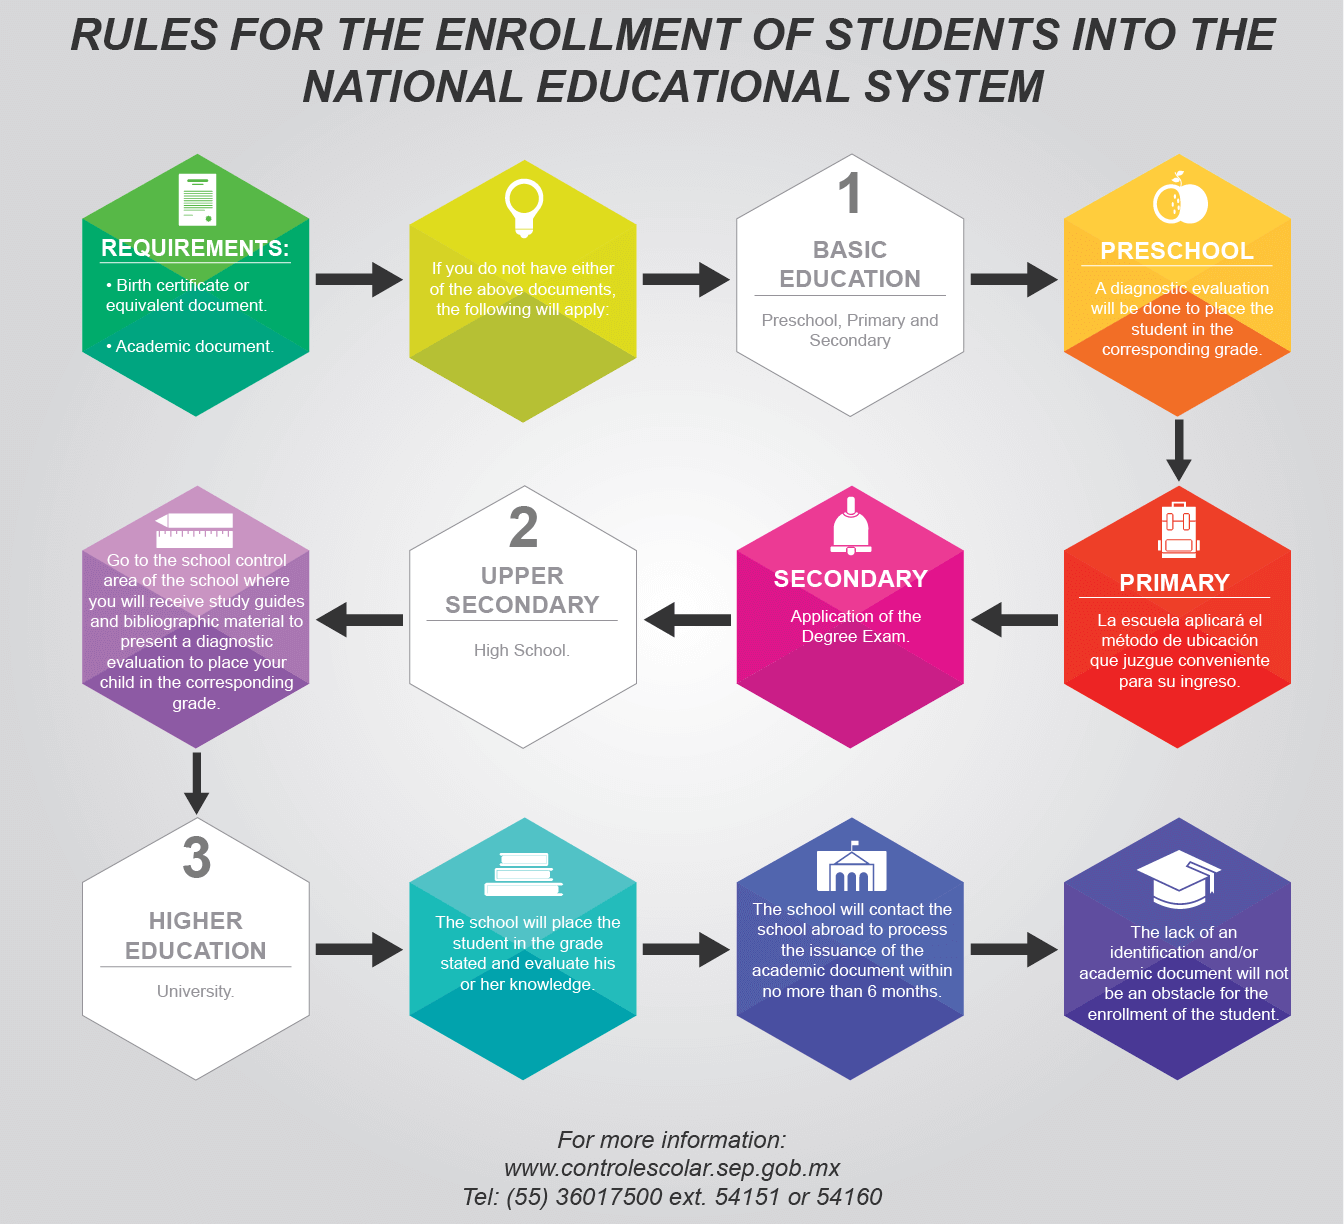 Enrollment rules